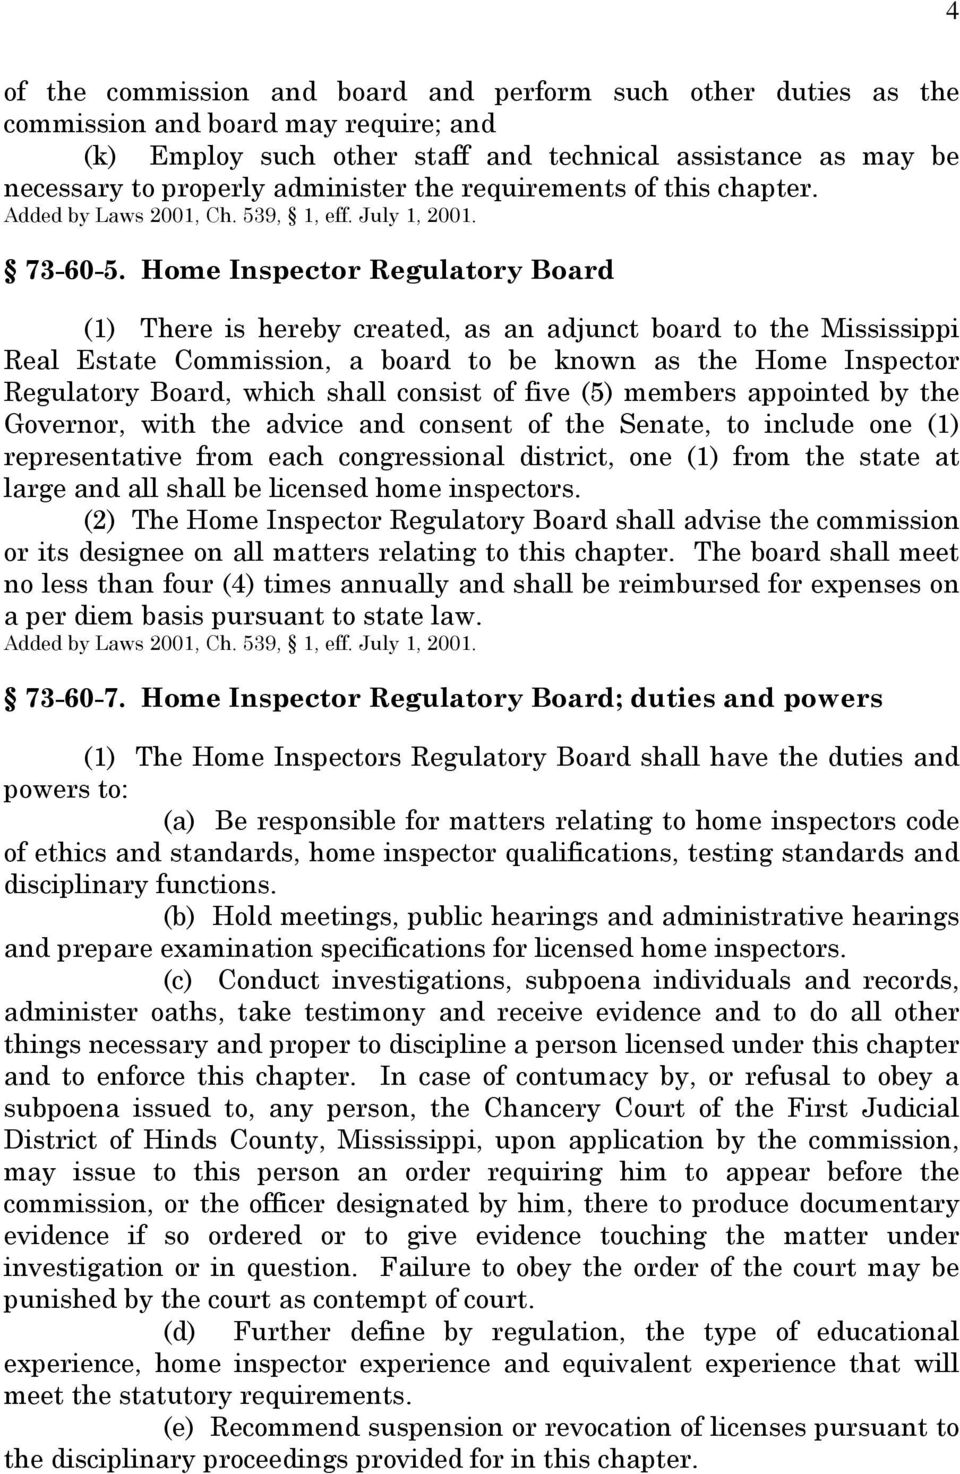 Home Inspector Regulatory Board (1) There is hereby created, as an adjunct board to the Mississippi Real Estate Commission, a board to be known as the Home Inspector Regulatory Board, which shall